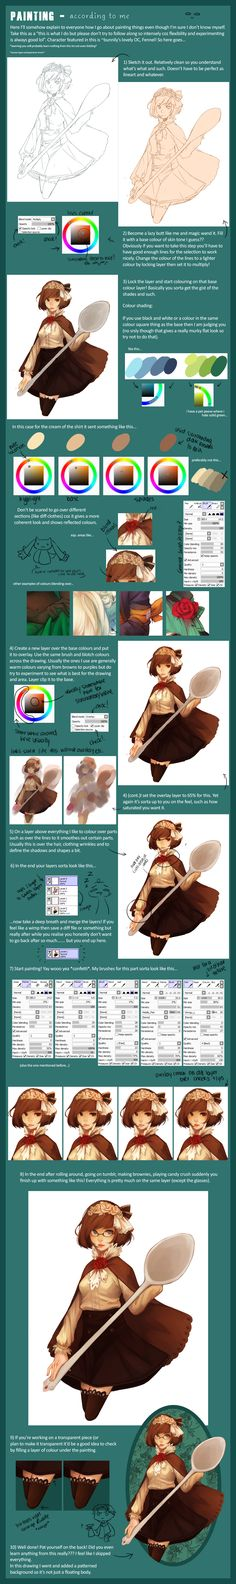 http://fc01.deviantart.net/fs71/f/2013/145/f/4/how_i_tend_to_paint_by_sangcoon-d66hajv.png